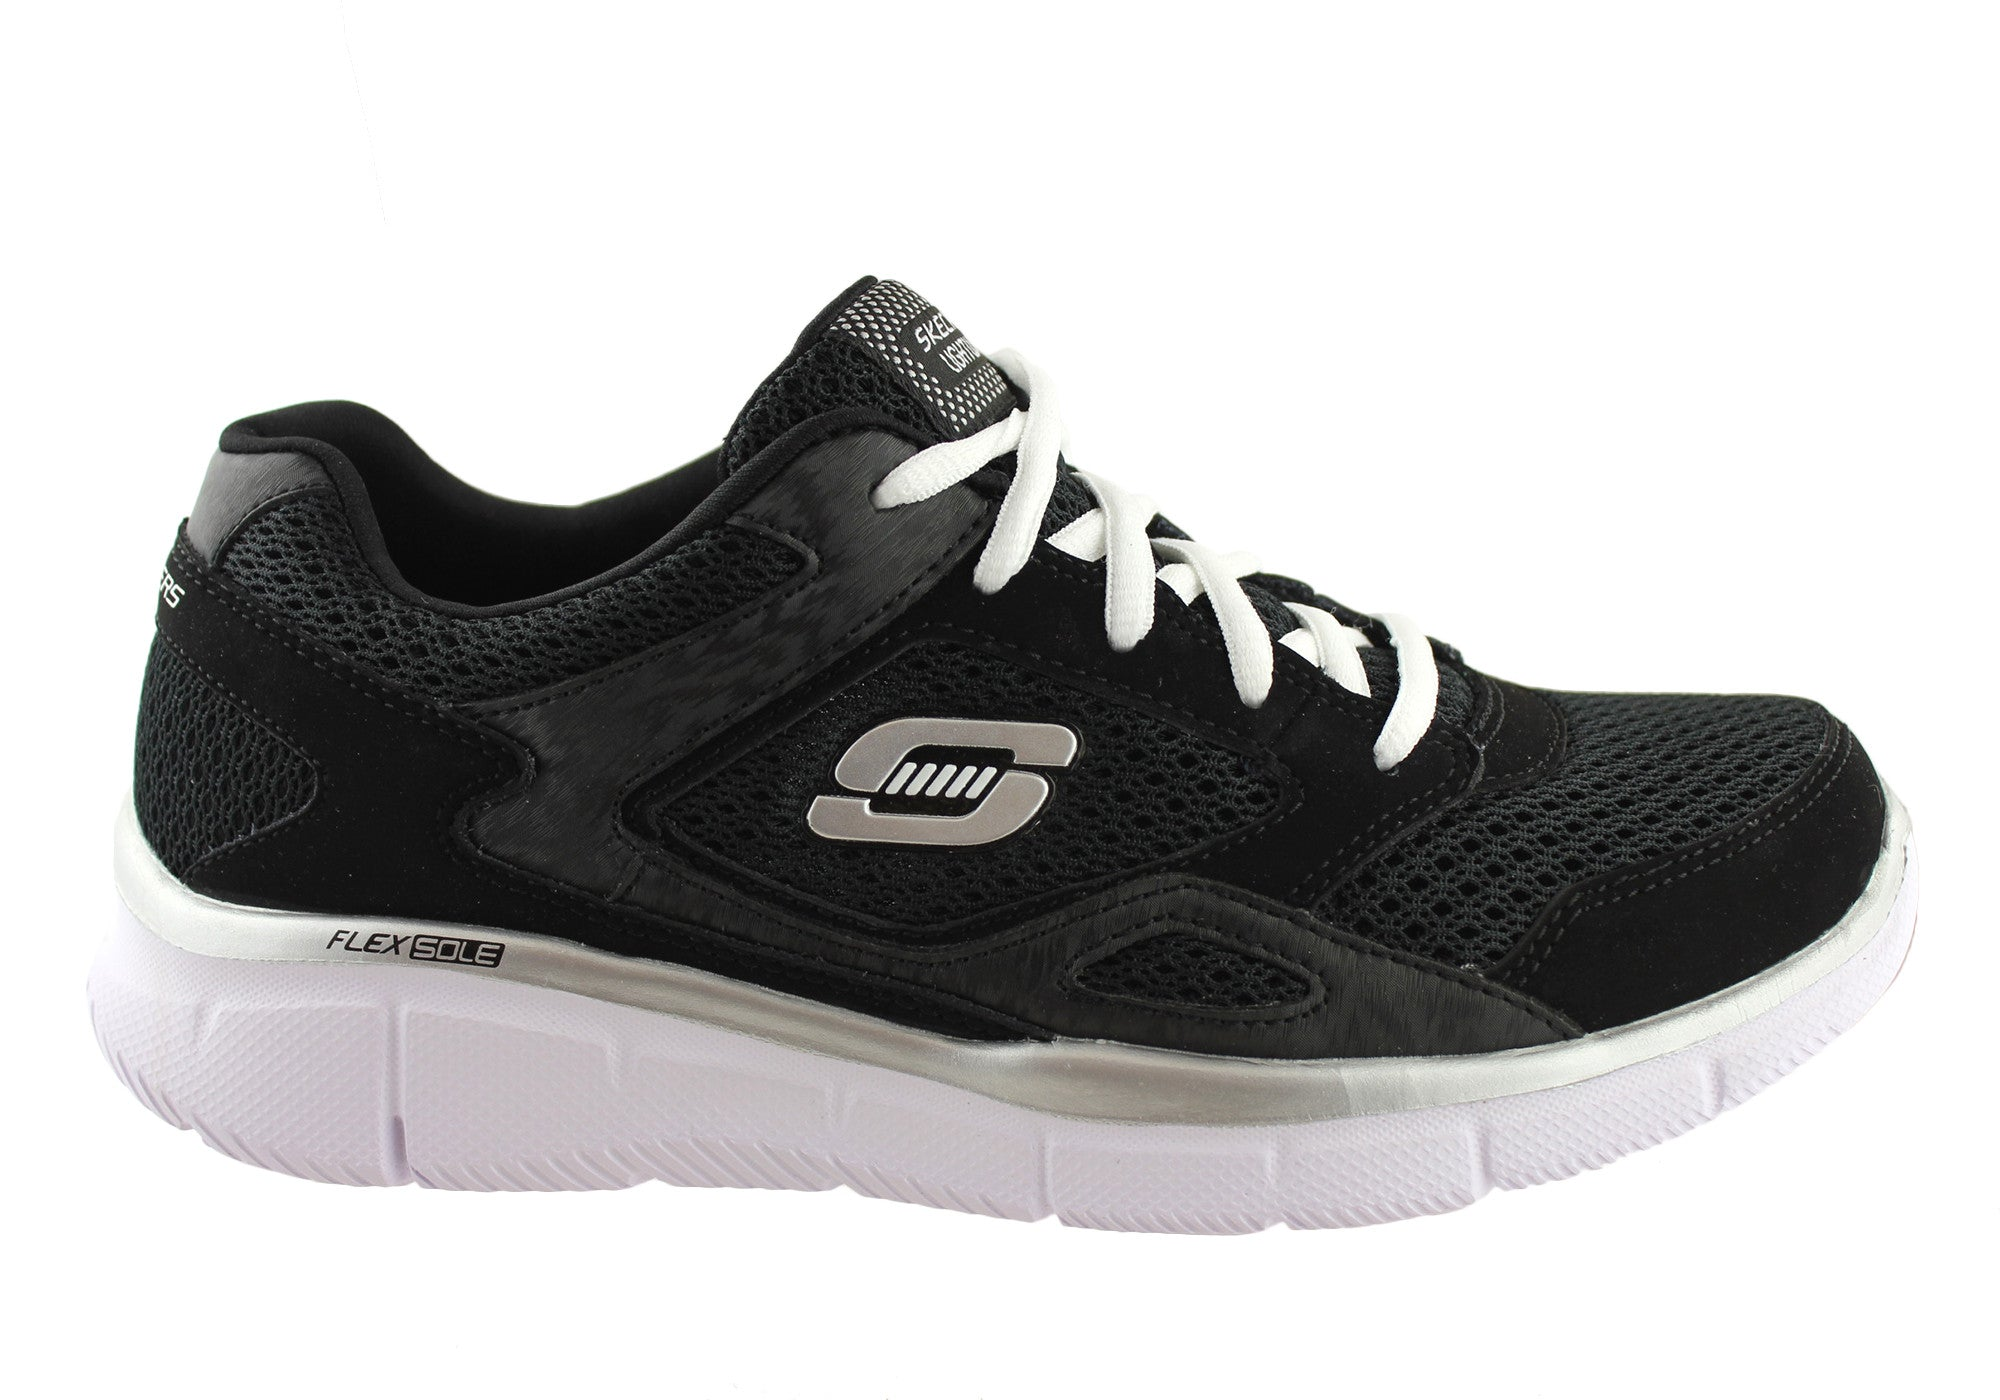 200b86ec1622 Skechers Equalizer Lace Up Kids Boys Sneakers Trainer Sport Shoes ...